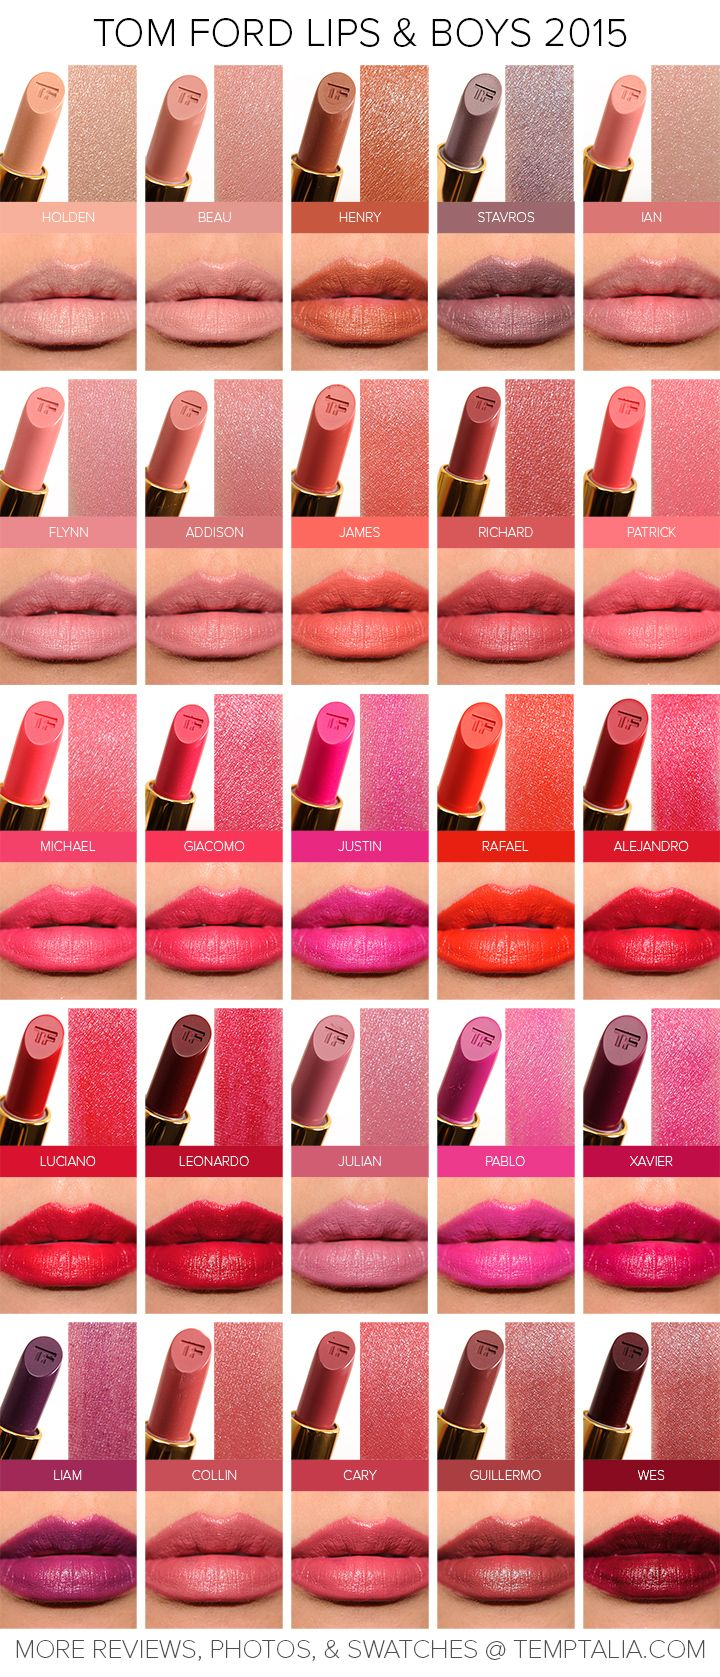 Sneak Peek: Tom Ford Lips & Boys 2015 Swatches & Photos (Returning Shades)